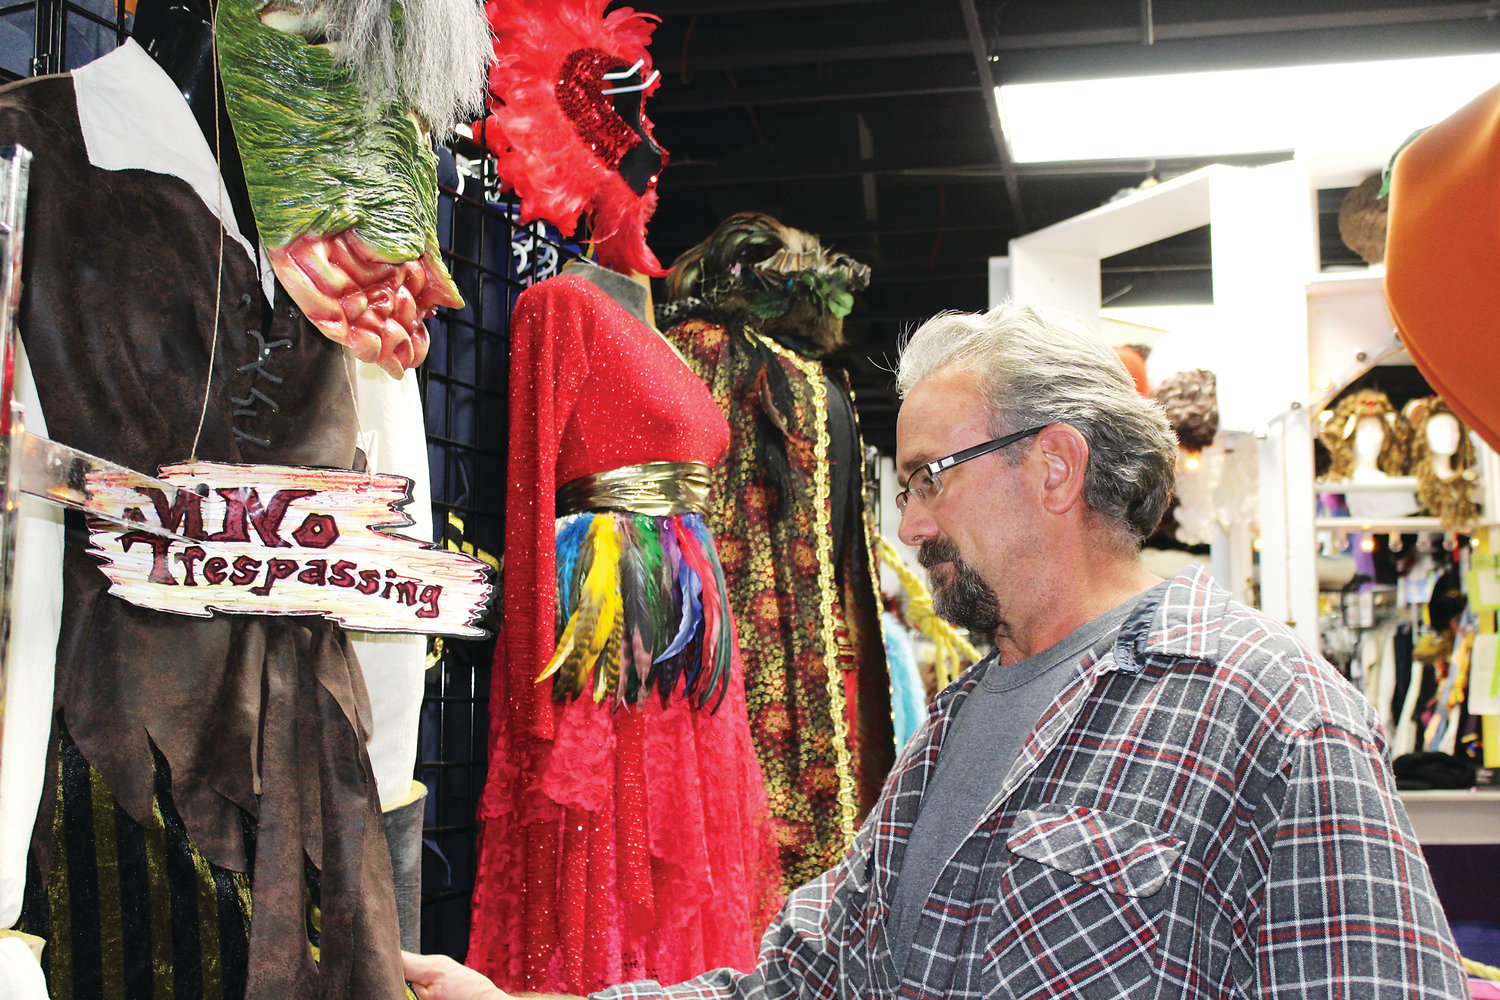 Dale Smith prepares for Halloween by shopping for costumes inside Disguises, a costume shop in Lakewood.